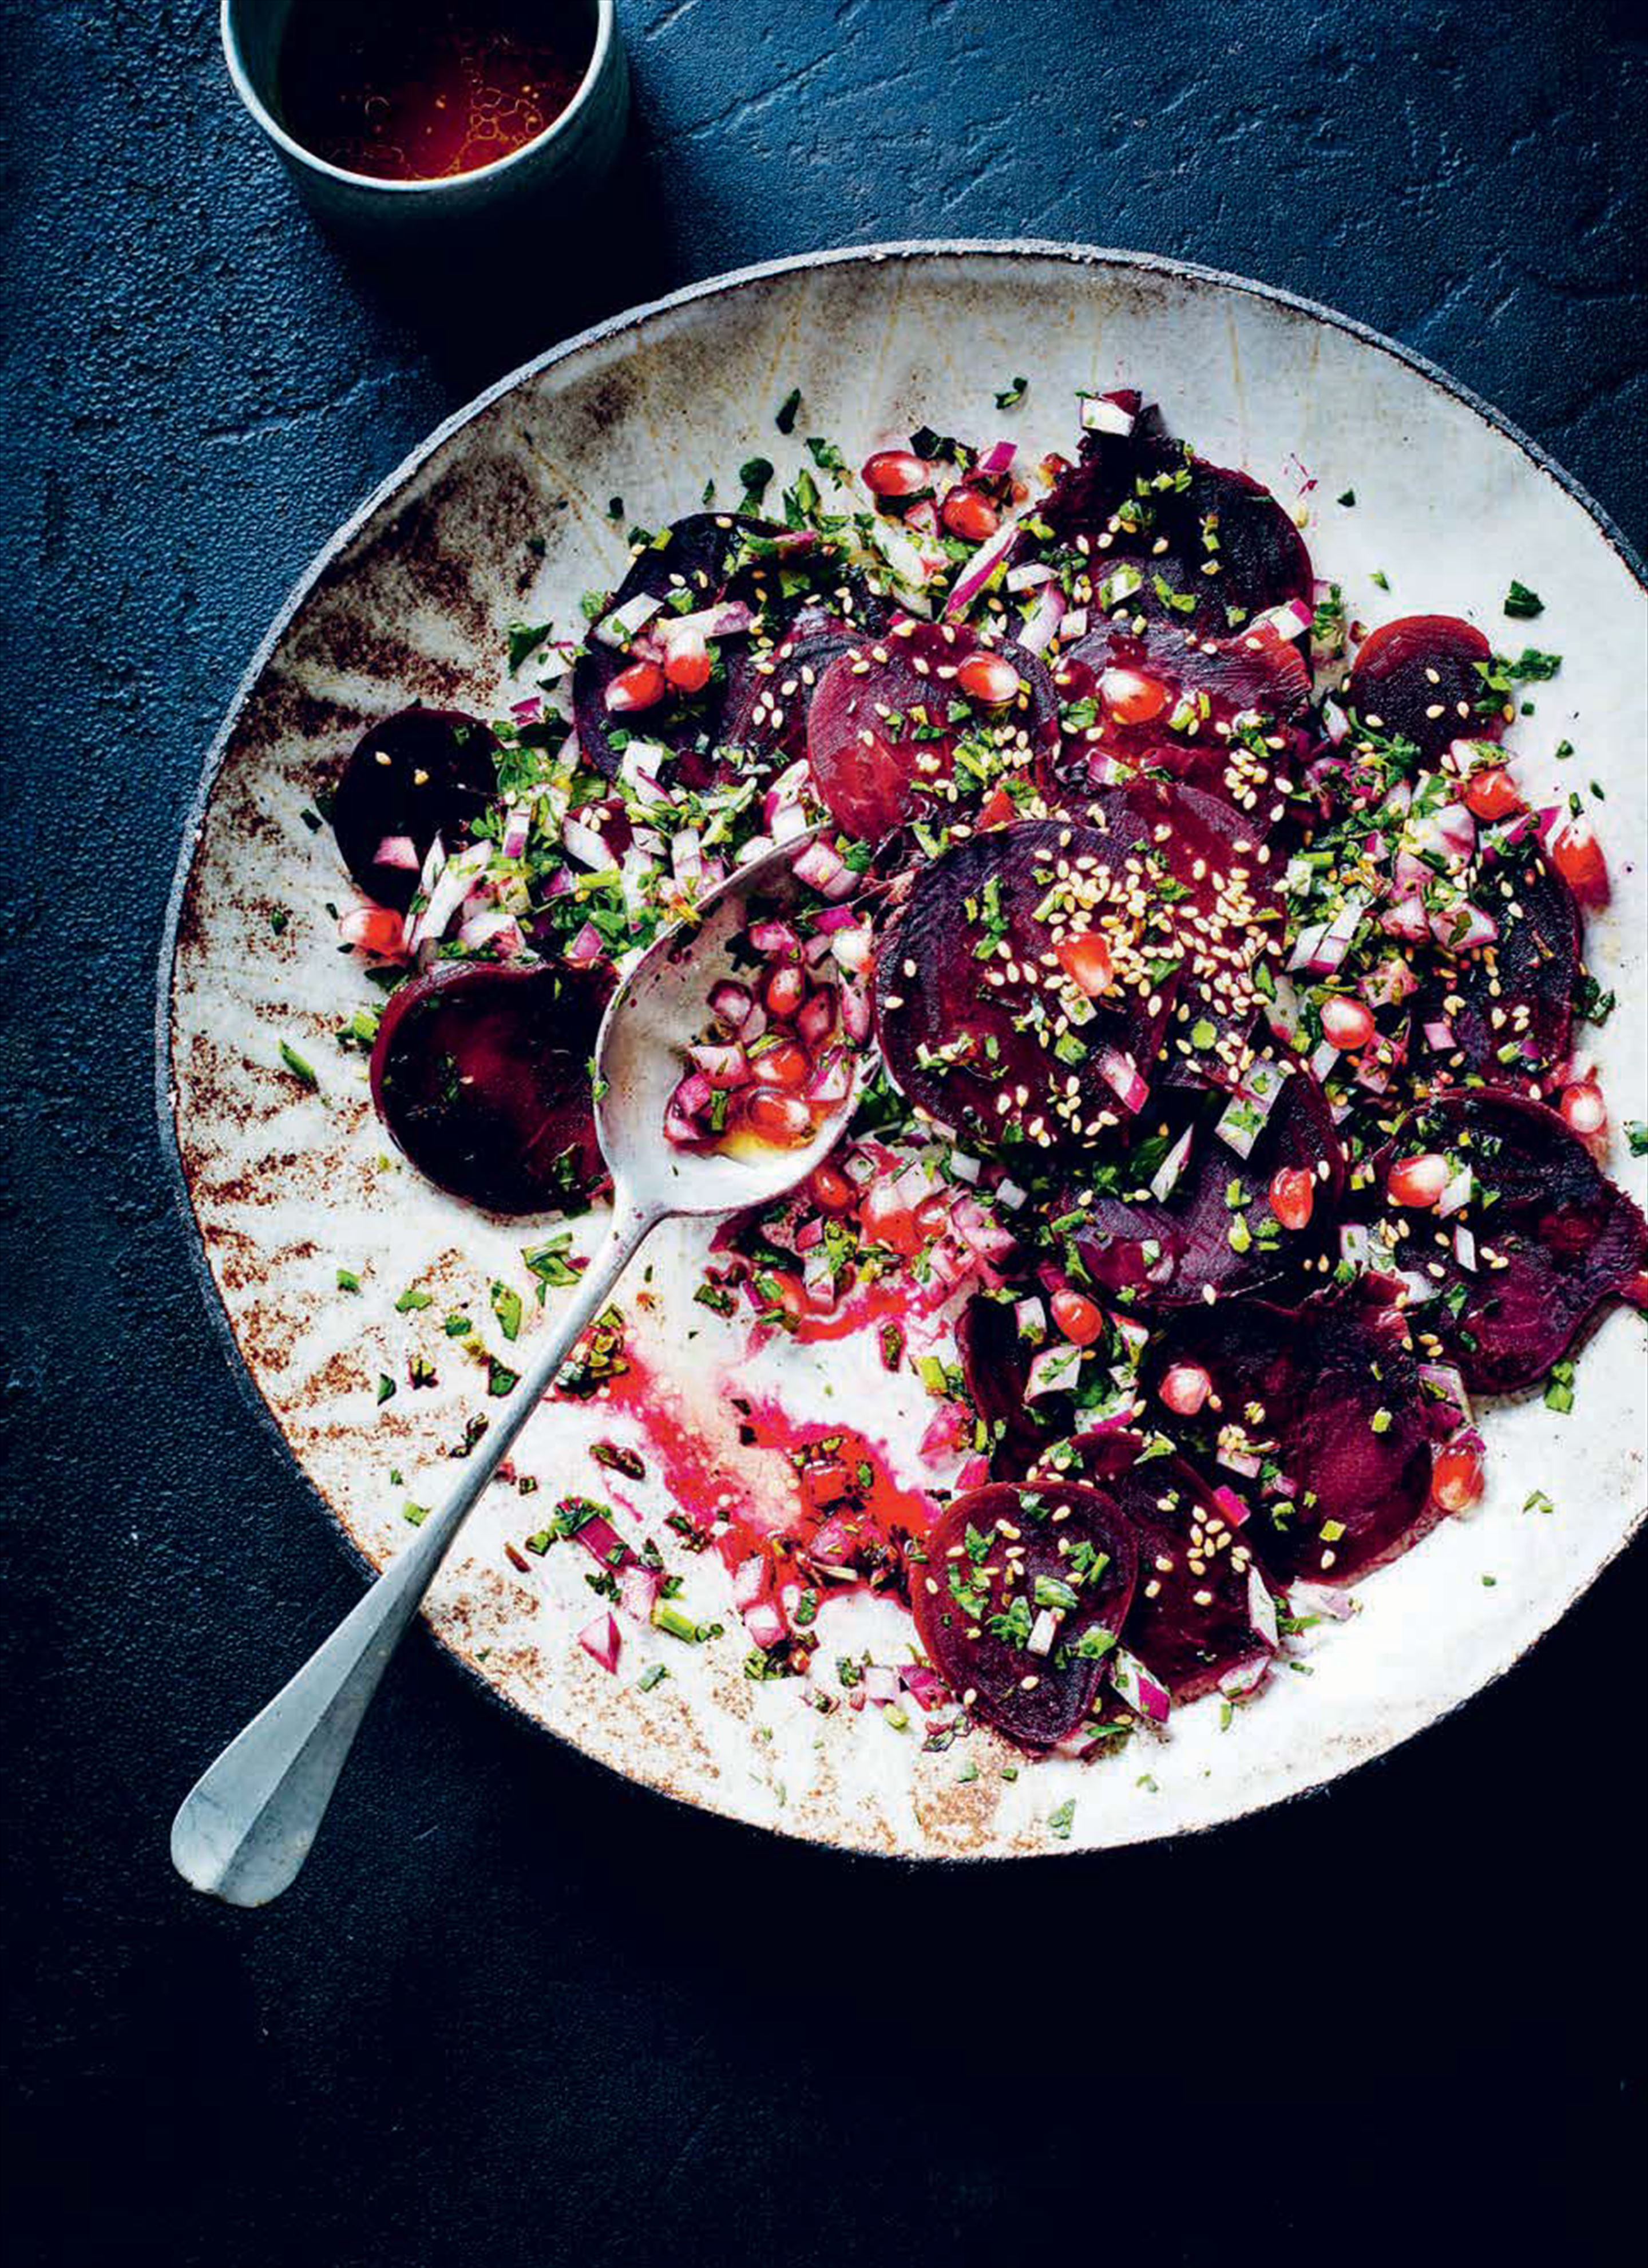 Beetroot salad with pomegranate molasses and sesame seeds